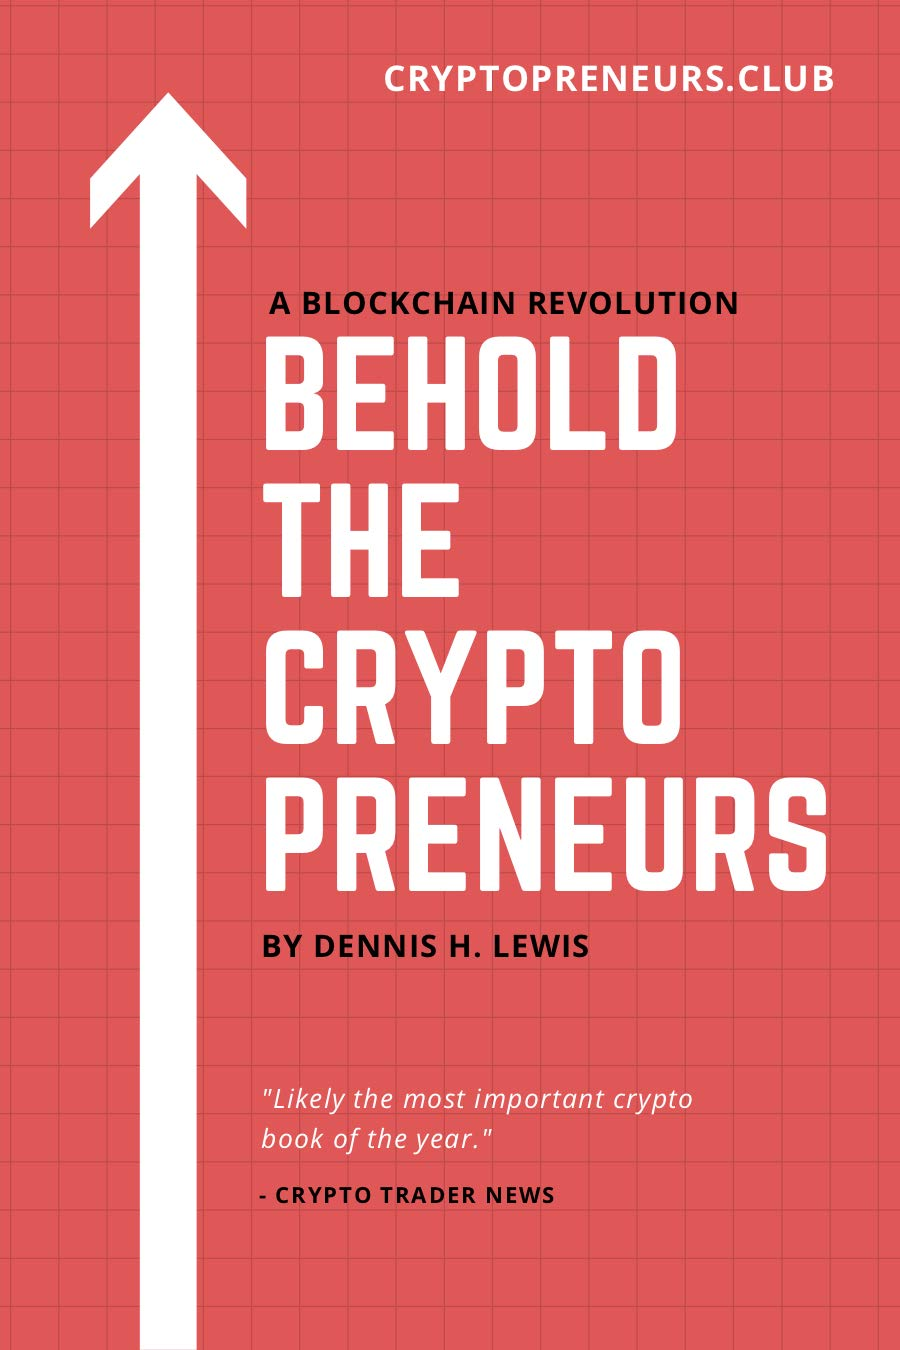 Behold the Cryptopreneurs: How to thrive as a cryptopreneur in the new blockchain economy without feeling like a used car salesman